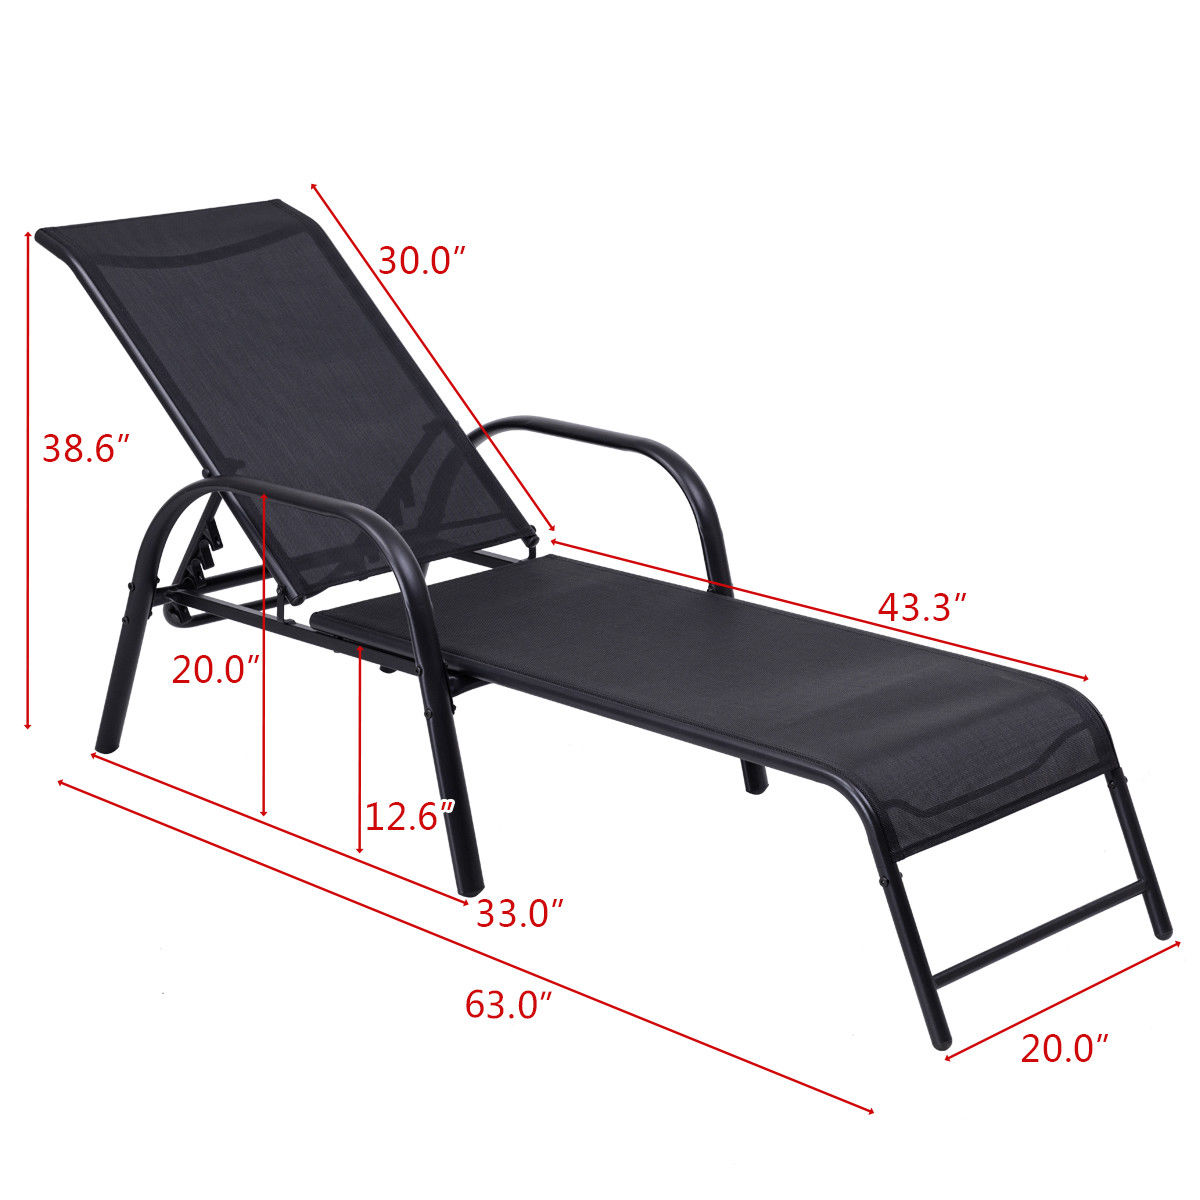 Goplus Outdoor Patio Chaise Lounge Chair Sling Lounges Recliner Adjustable Back - image 7 of 9